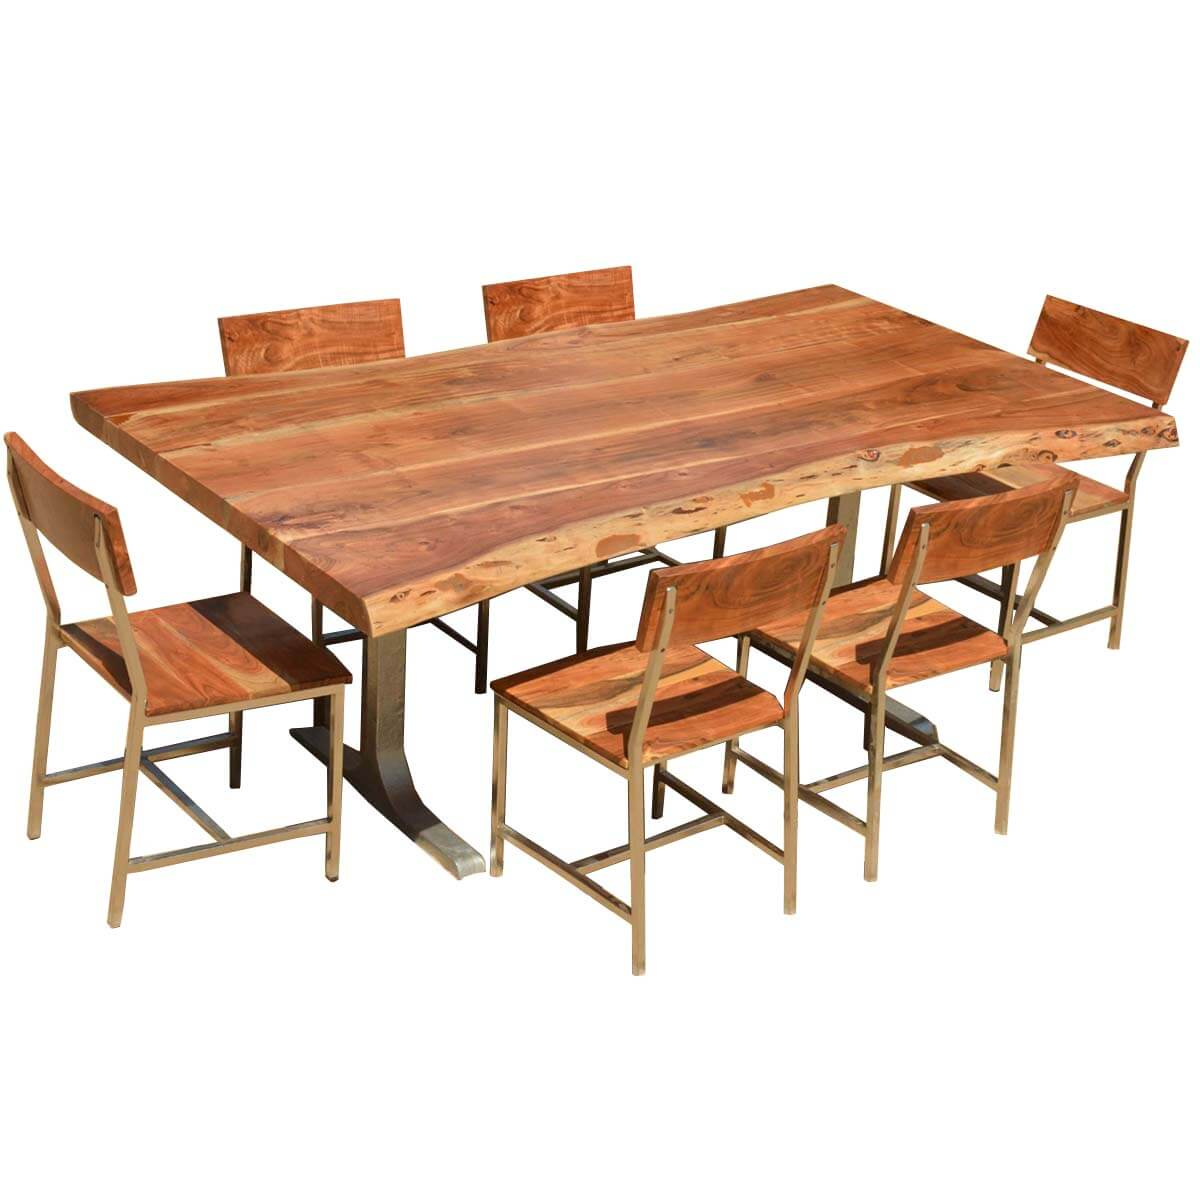 sierra solid wood rustic live edge dining table chairs set